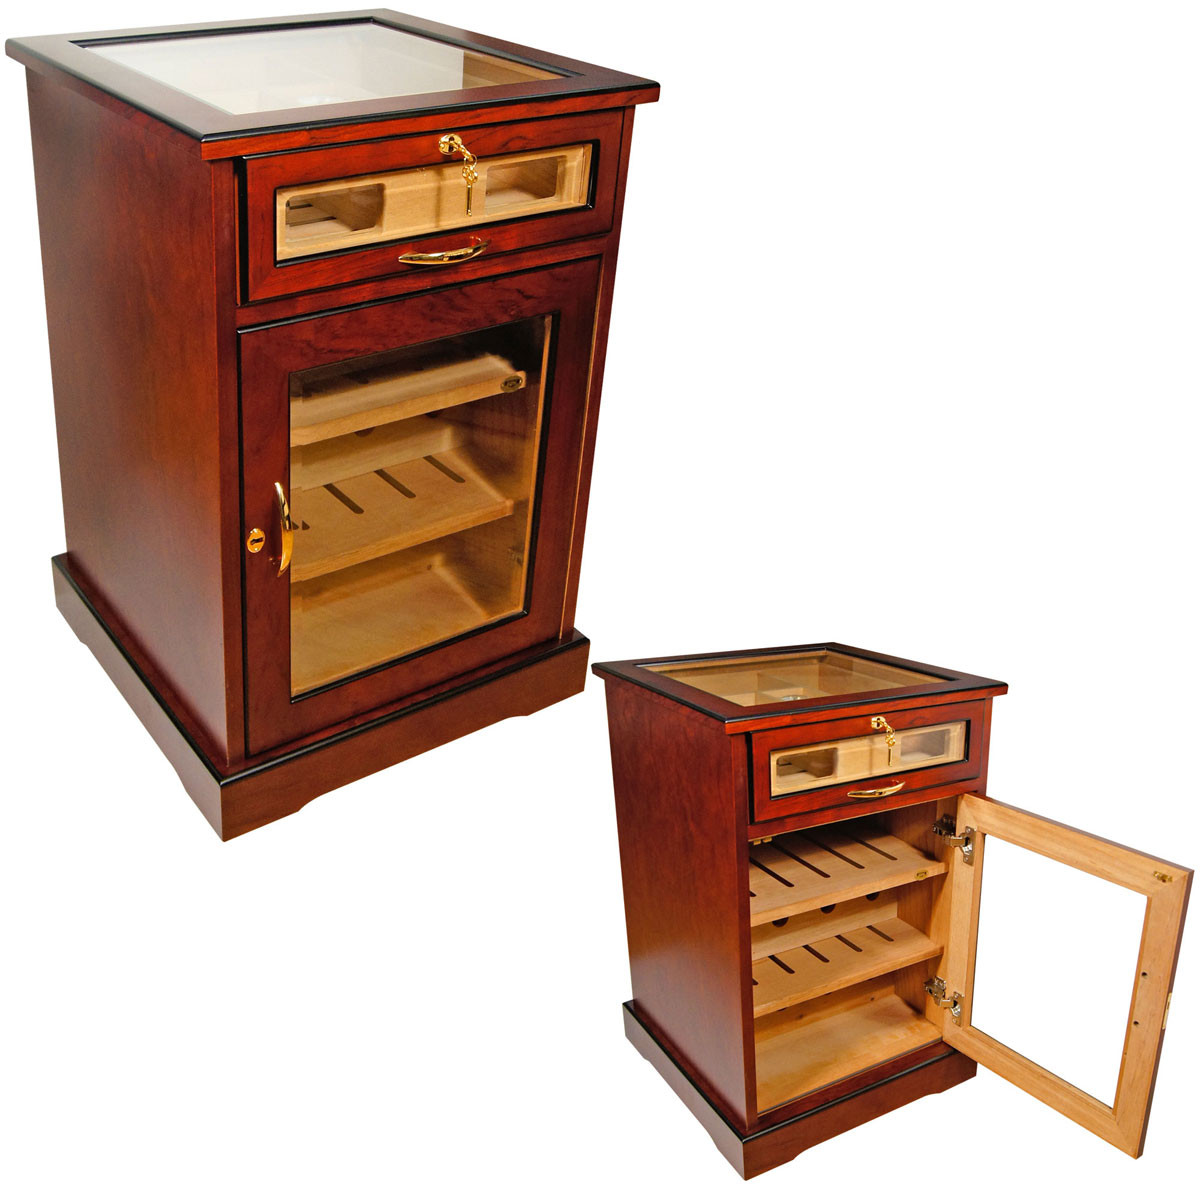 Cabinet Humidors End Table Humidor CUBAN CRAFTERS